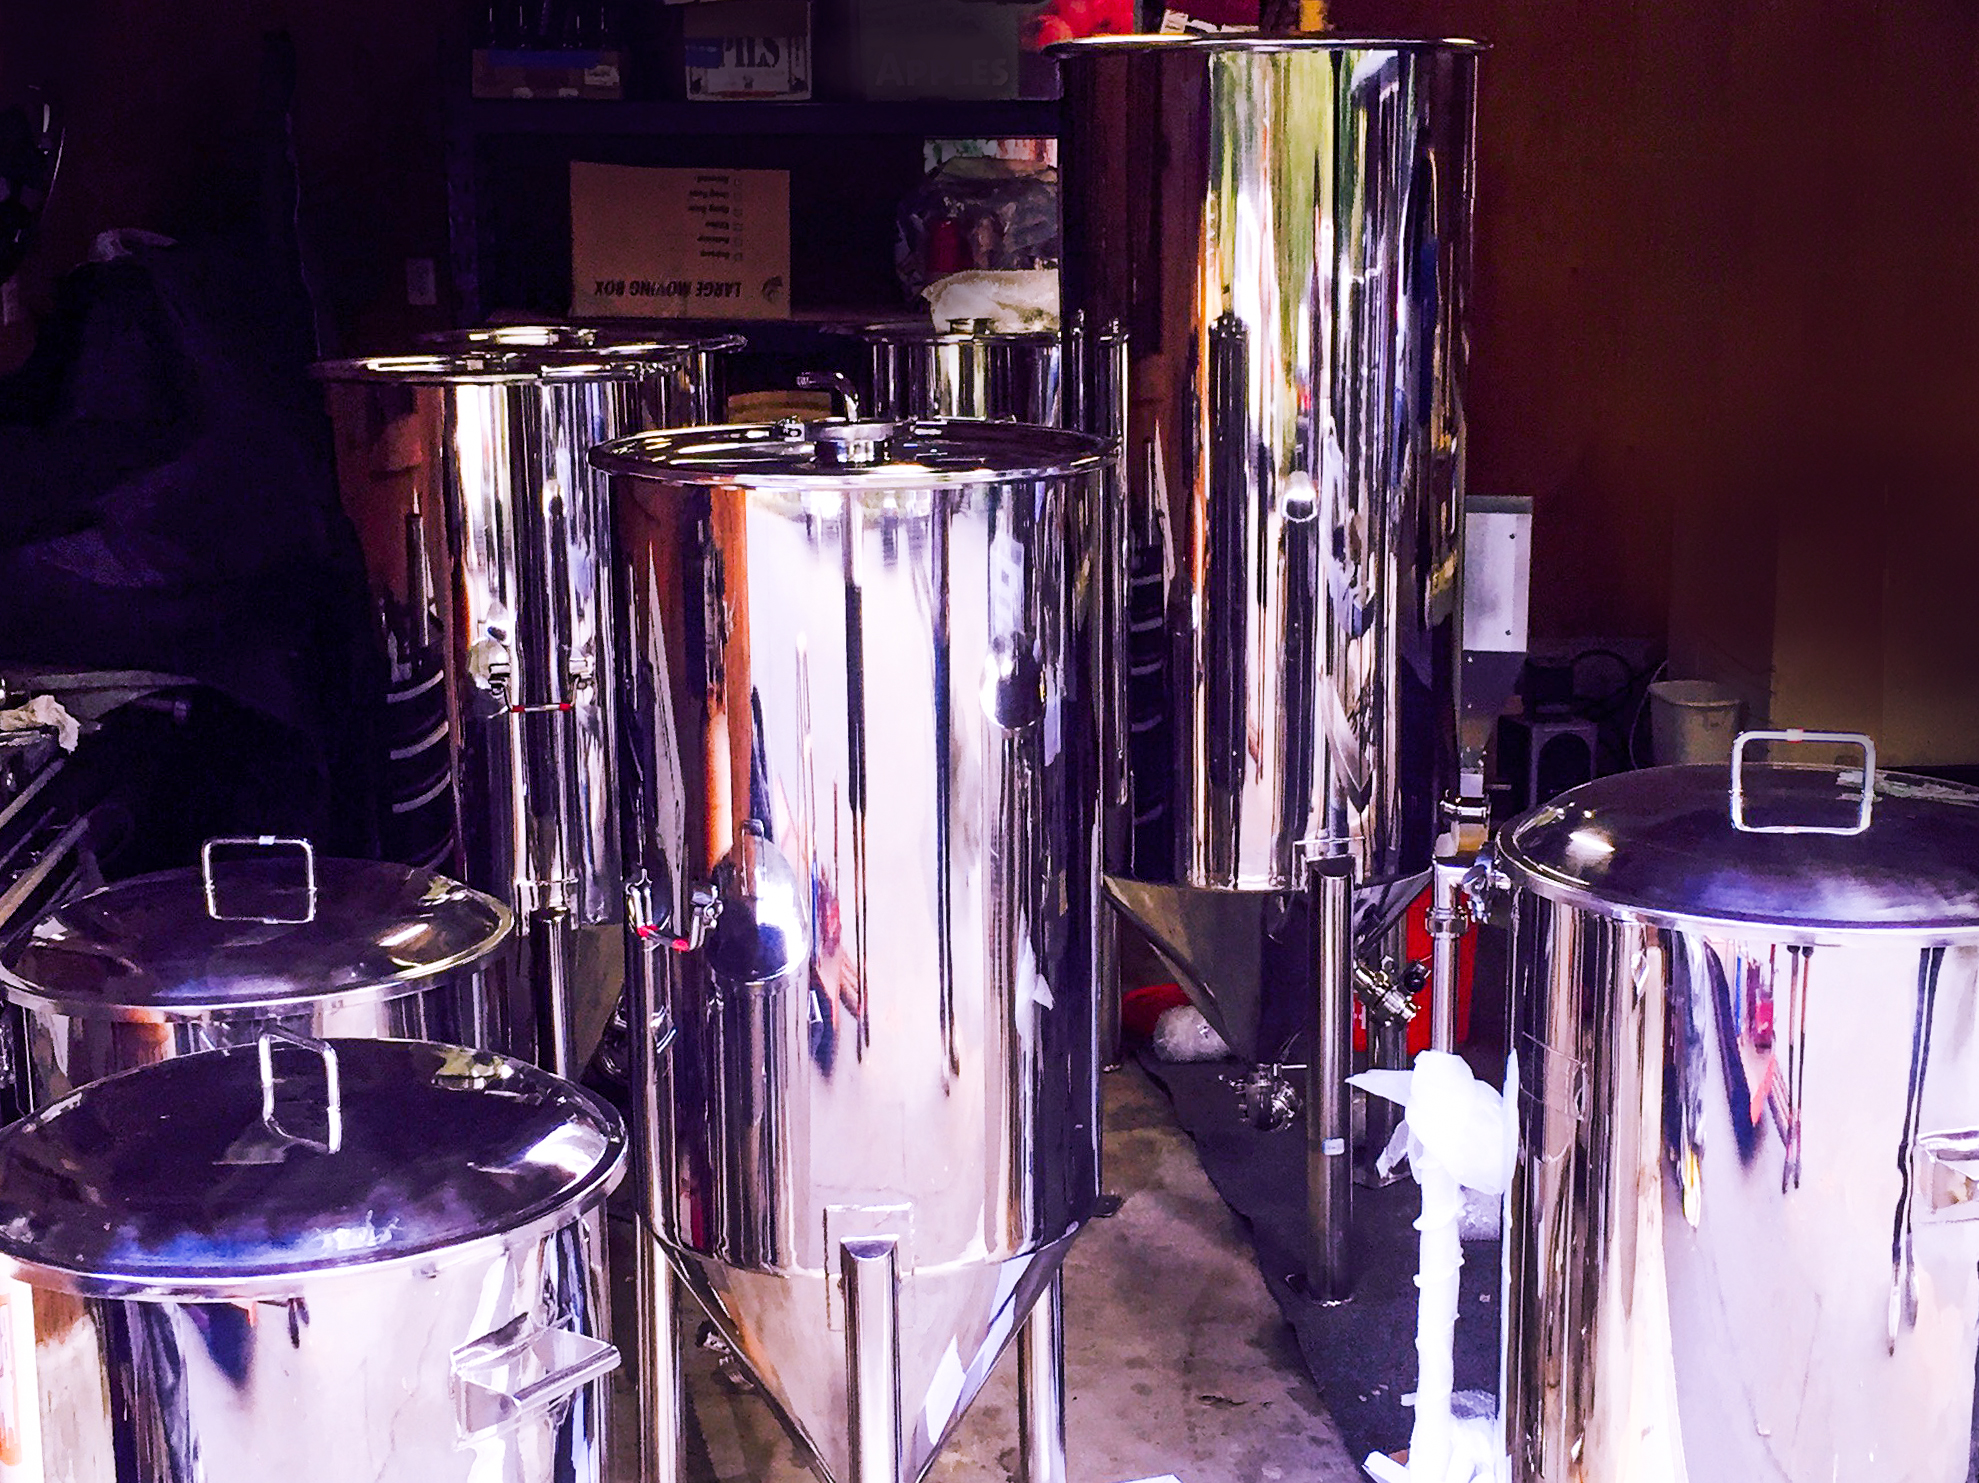 Our pilot brewing system, currently in shambles waiting for us to install it